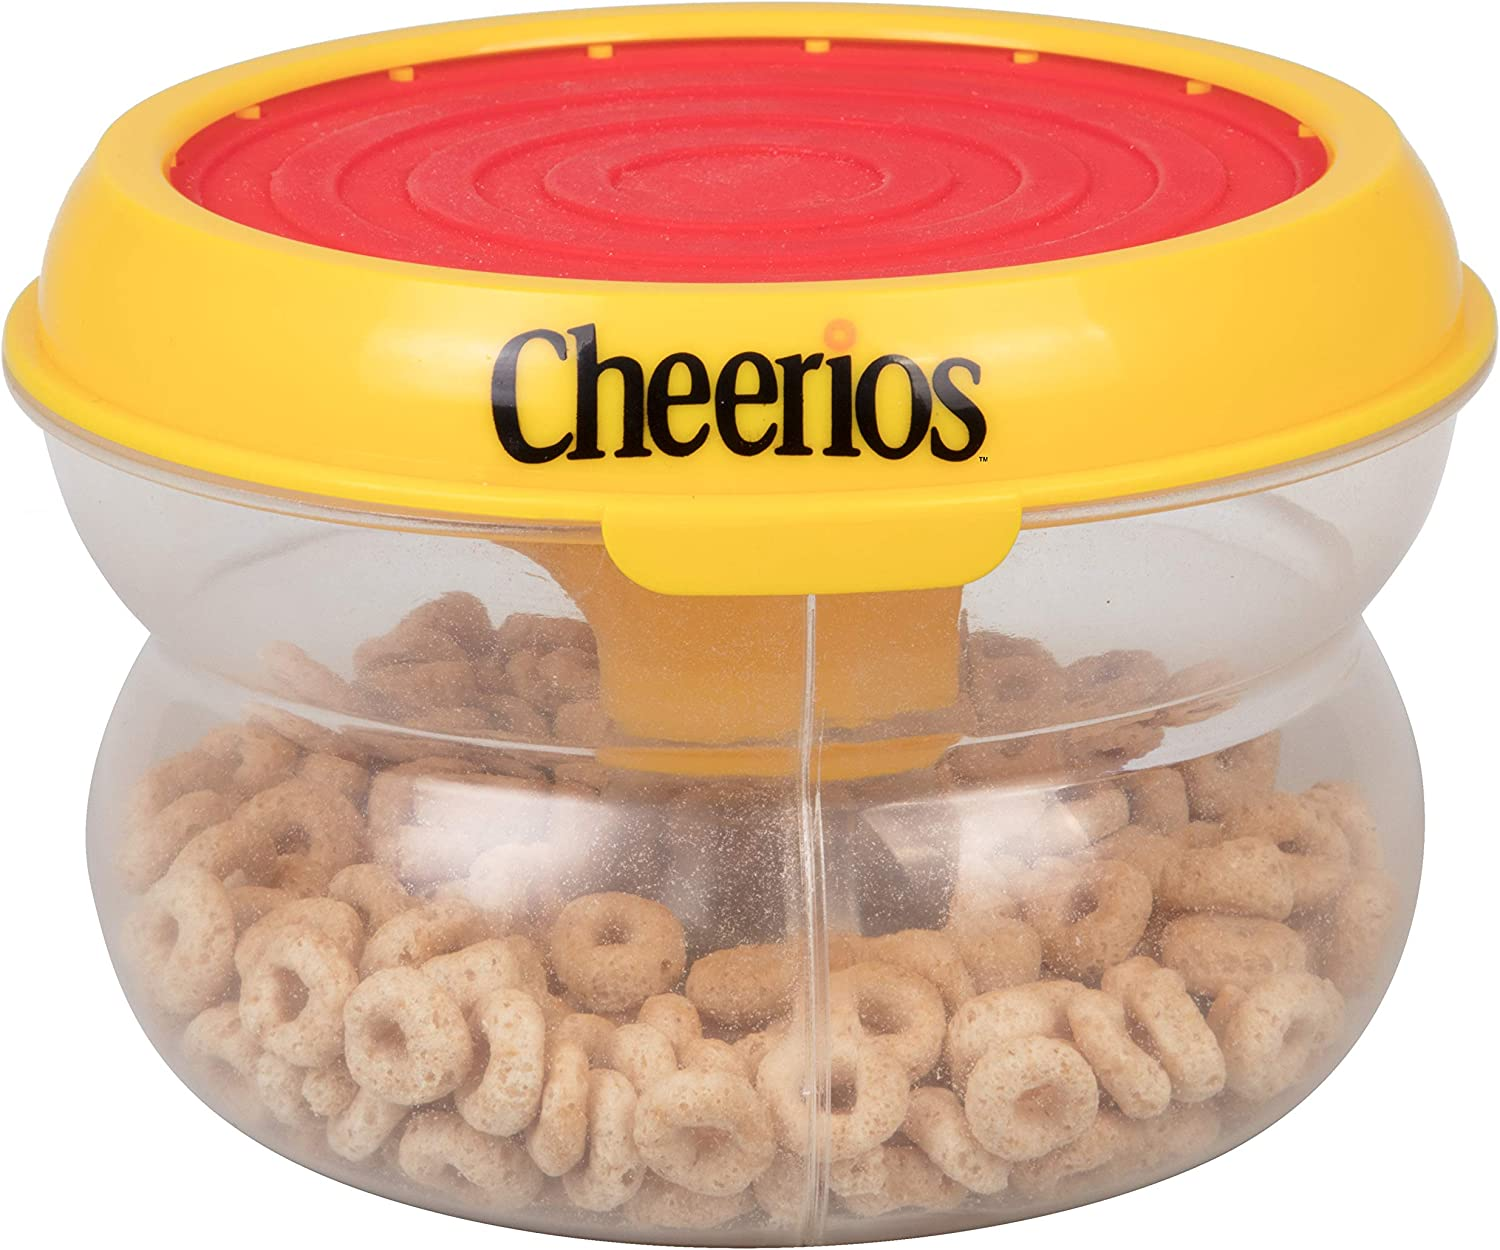 SCS Direct Cheerios Hand Drum Pat N' Snack Baby Snack Food Container - Toddler Spill Proof Feeding Bowl Cup w Travel Silicone Lid - BPA Free, PVC Free, Dishwasher Safe